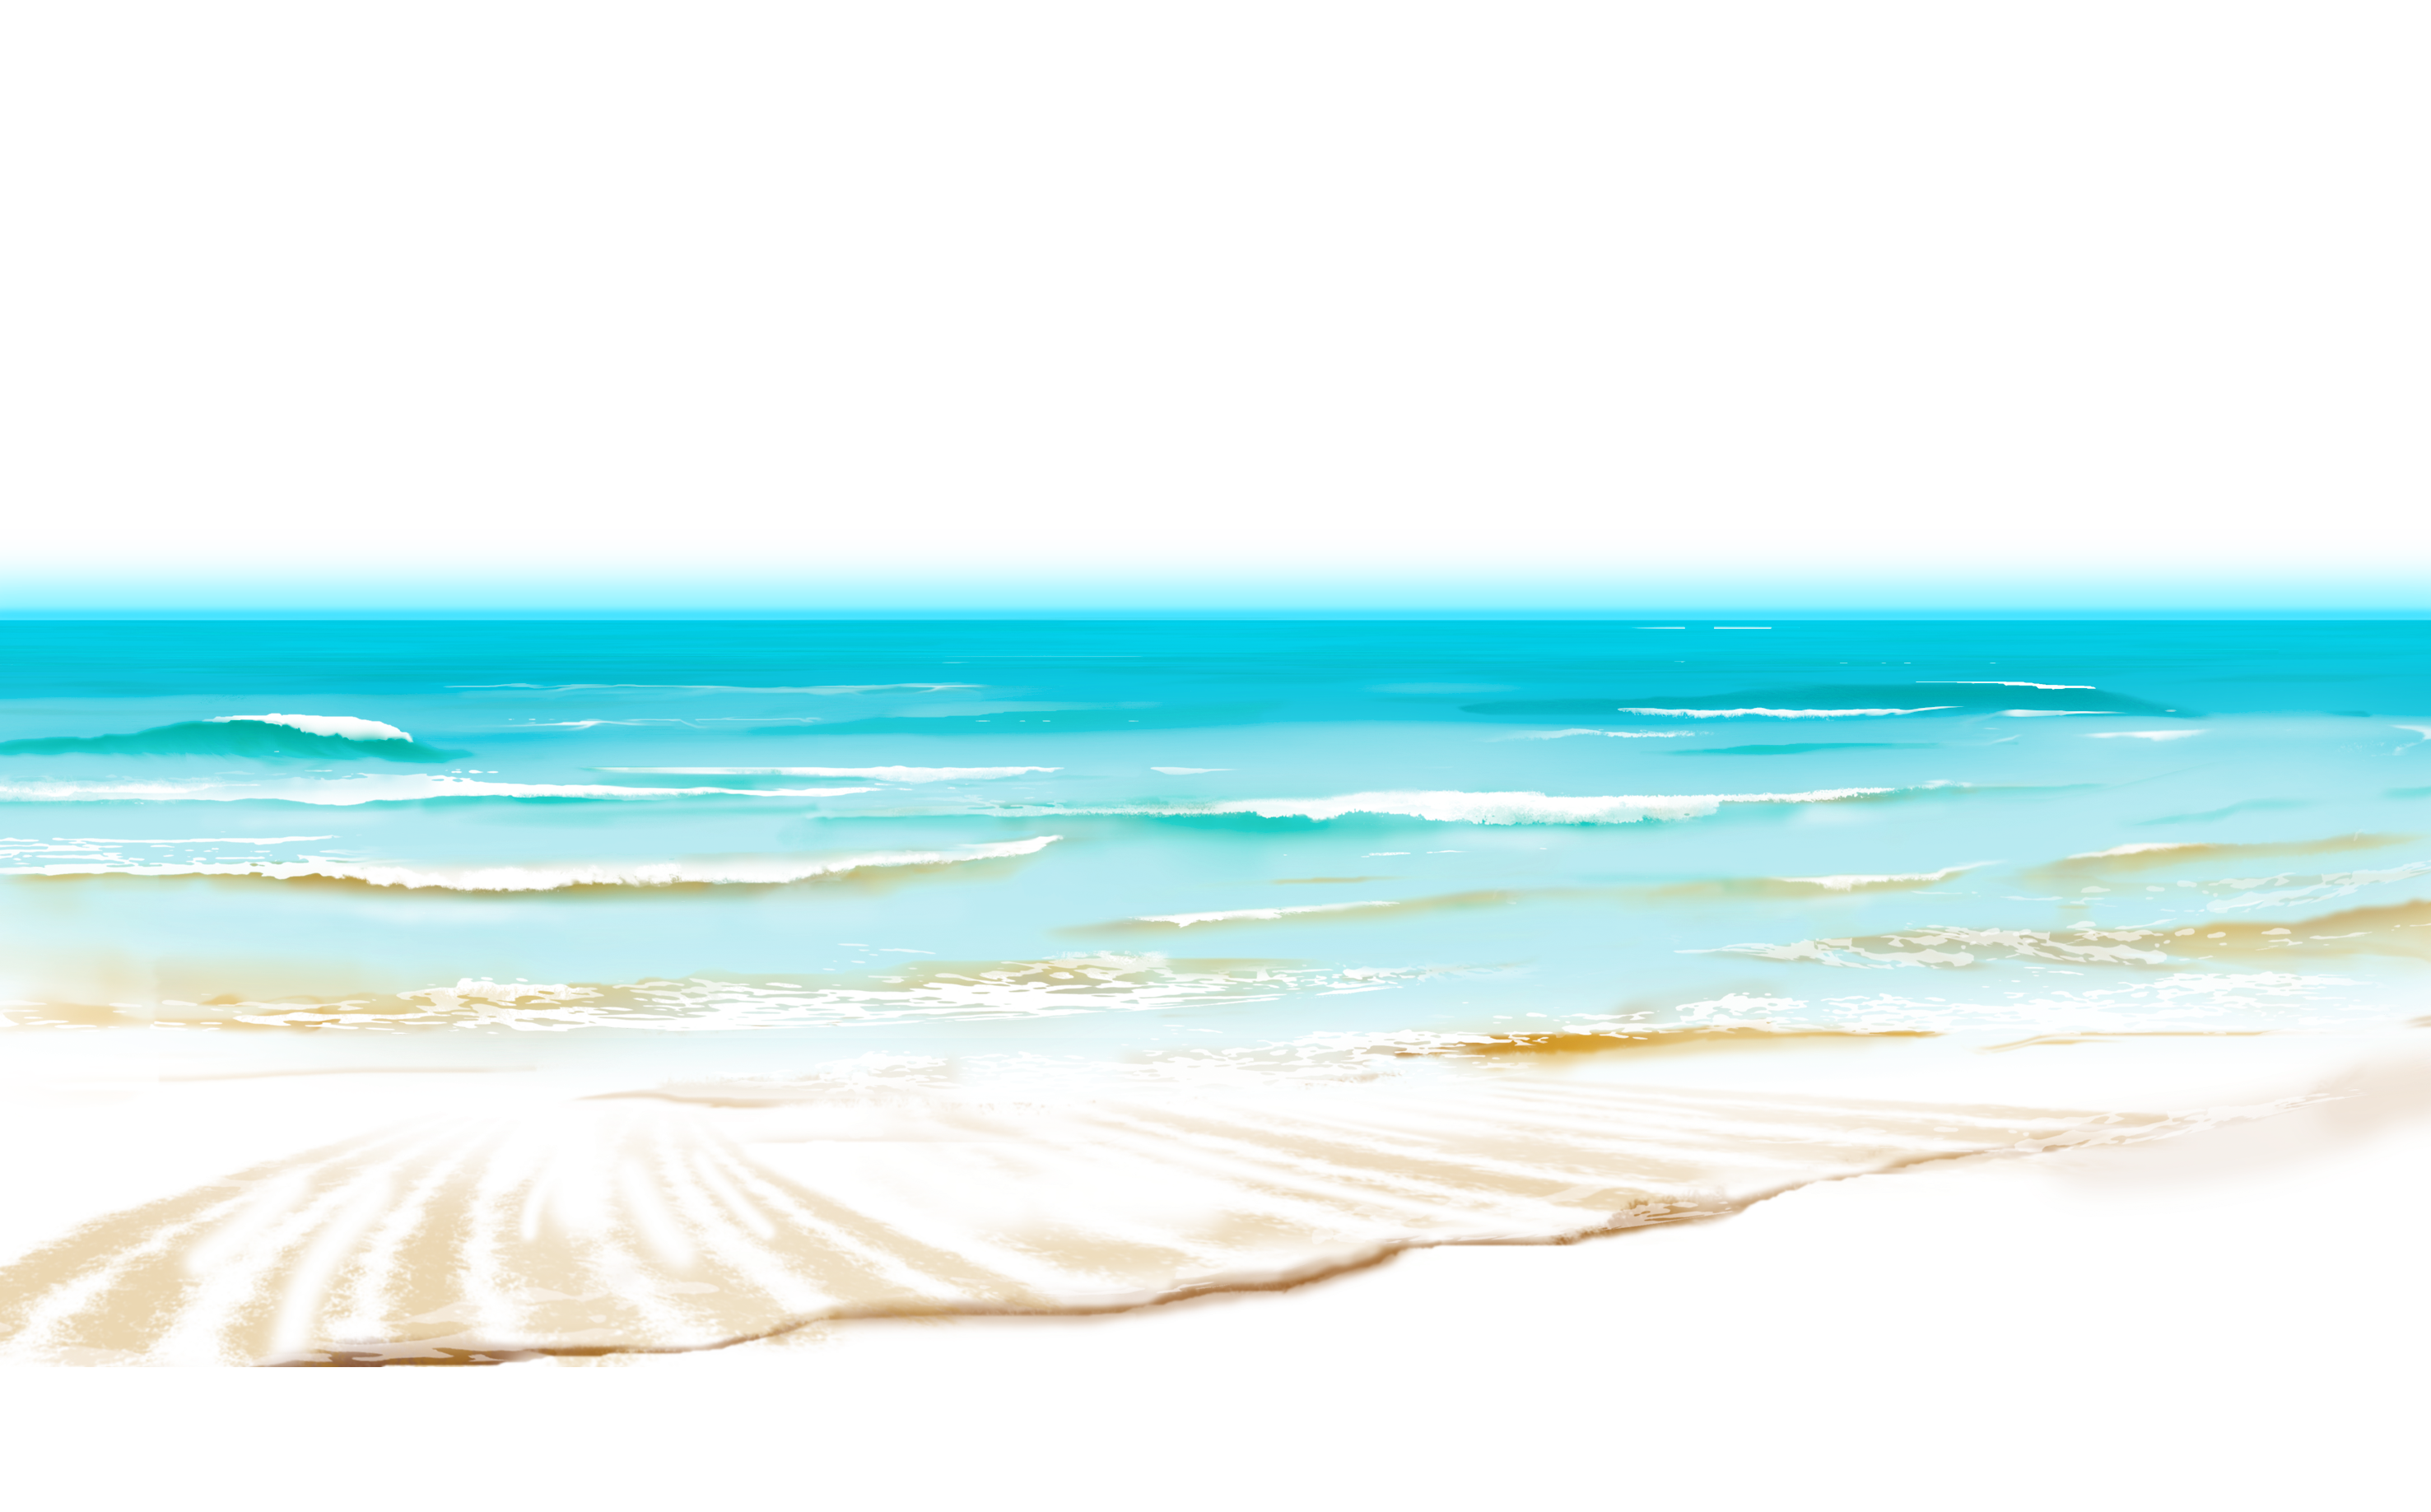 Beach shore clipart picture royalty free library Sea shore clipart clipart images gallery for free download | MyReal picture royalty free library